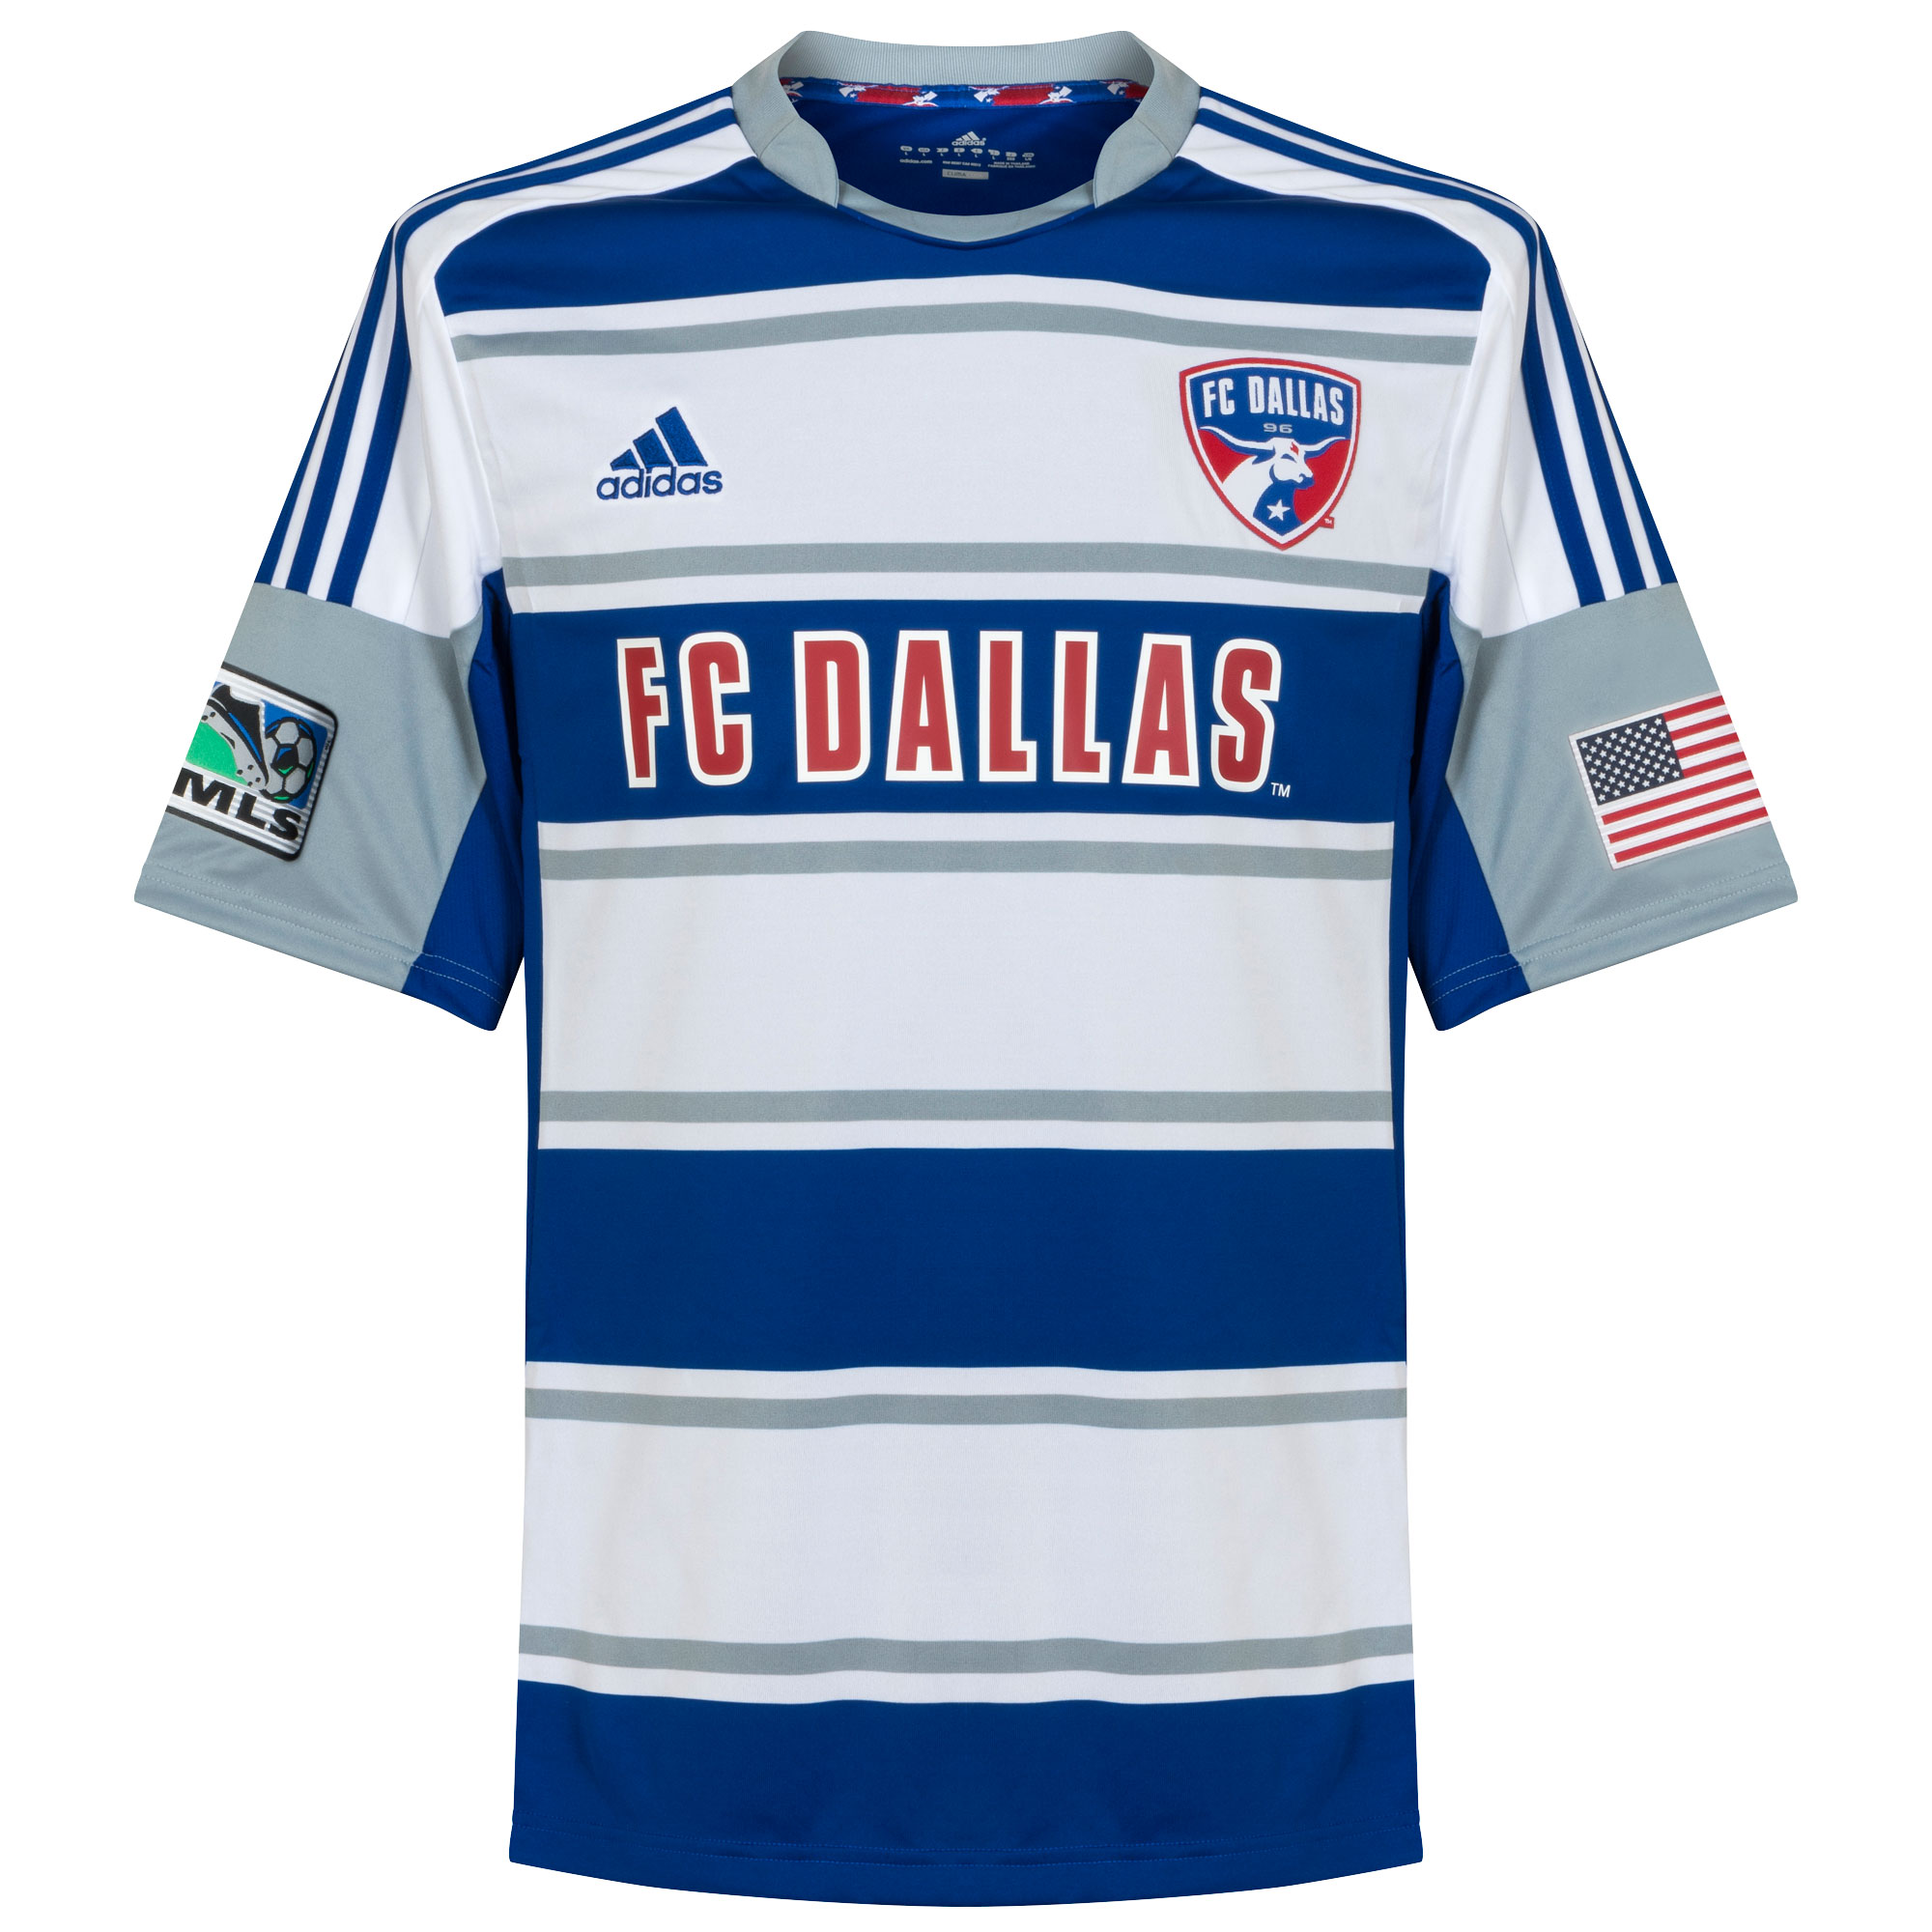 FC Dallas Away Players FORMOTION Shirt 2012 2013 - 58